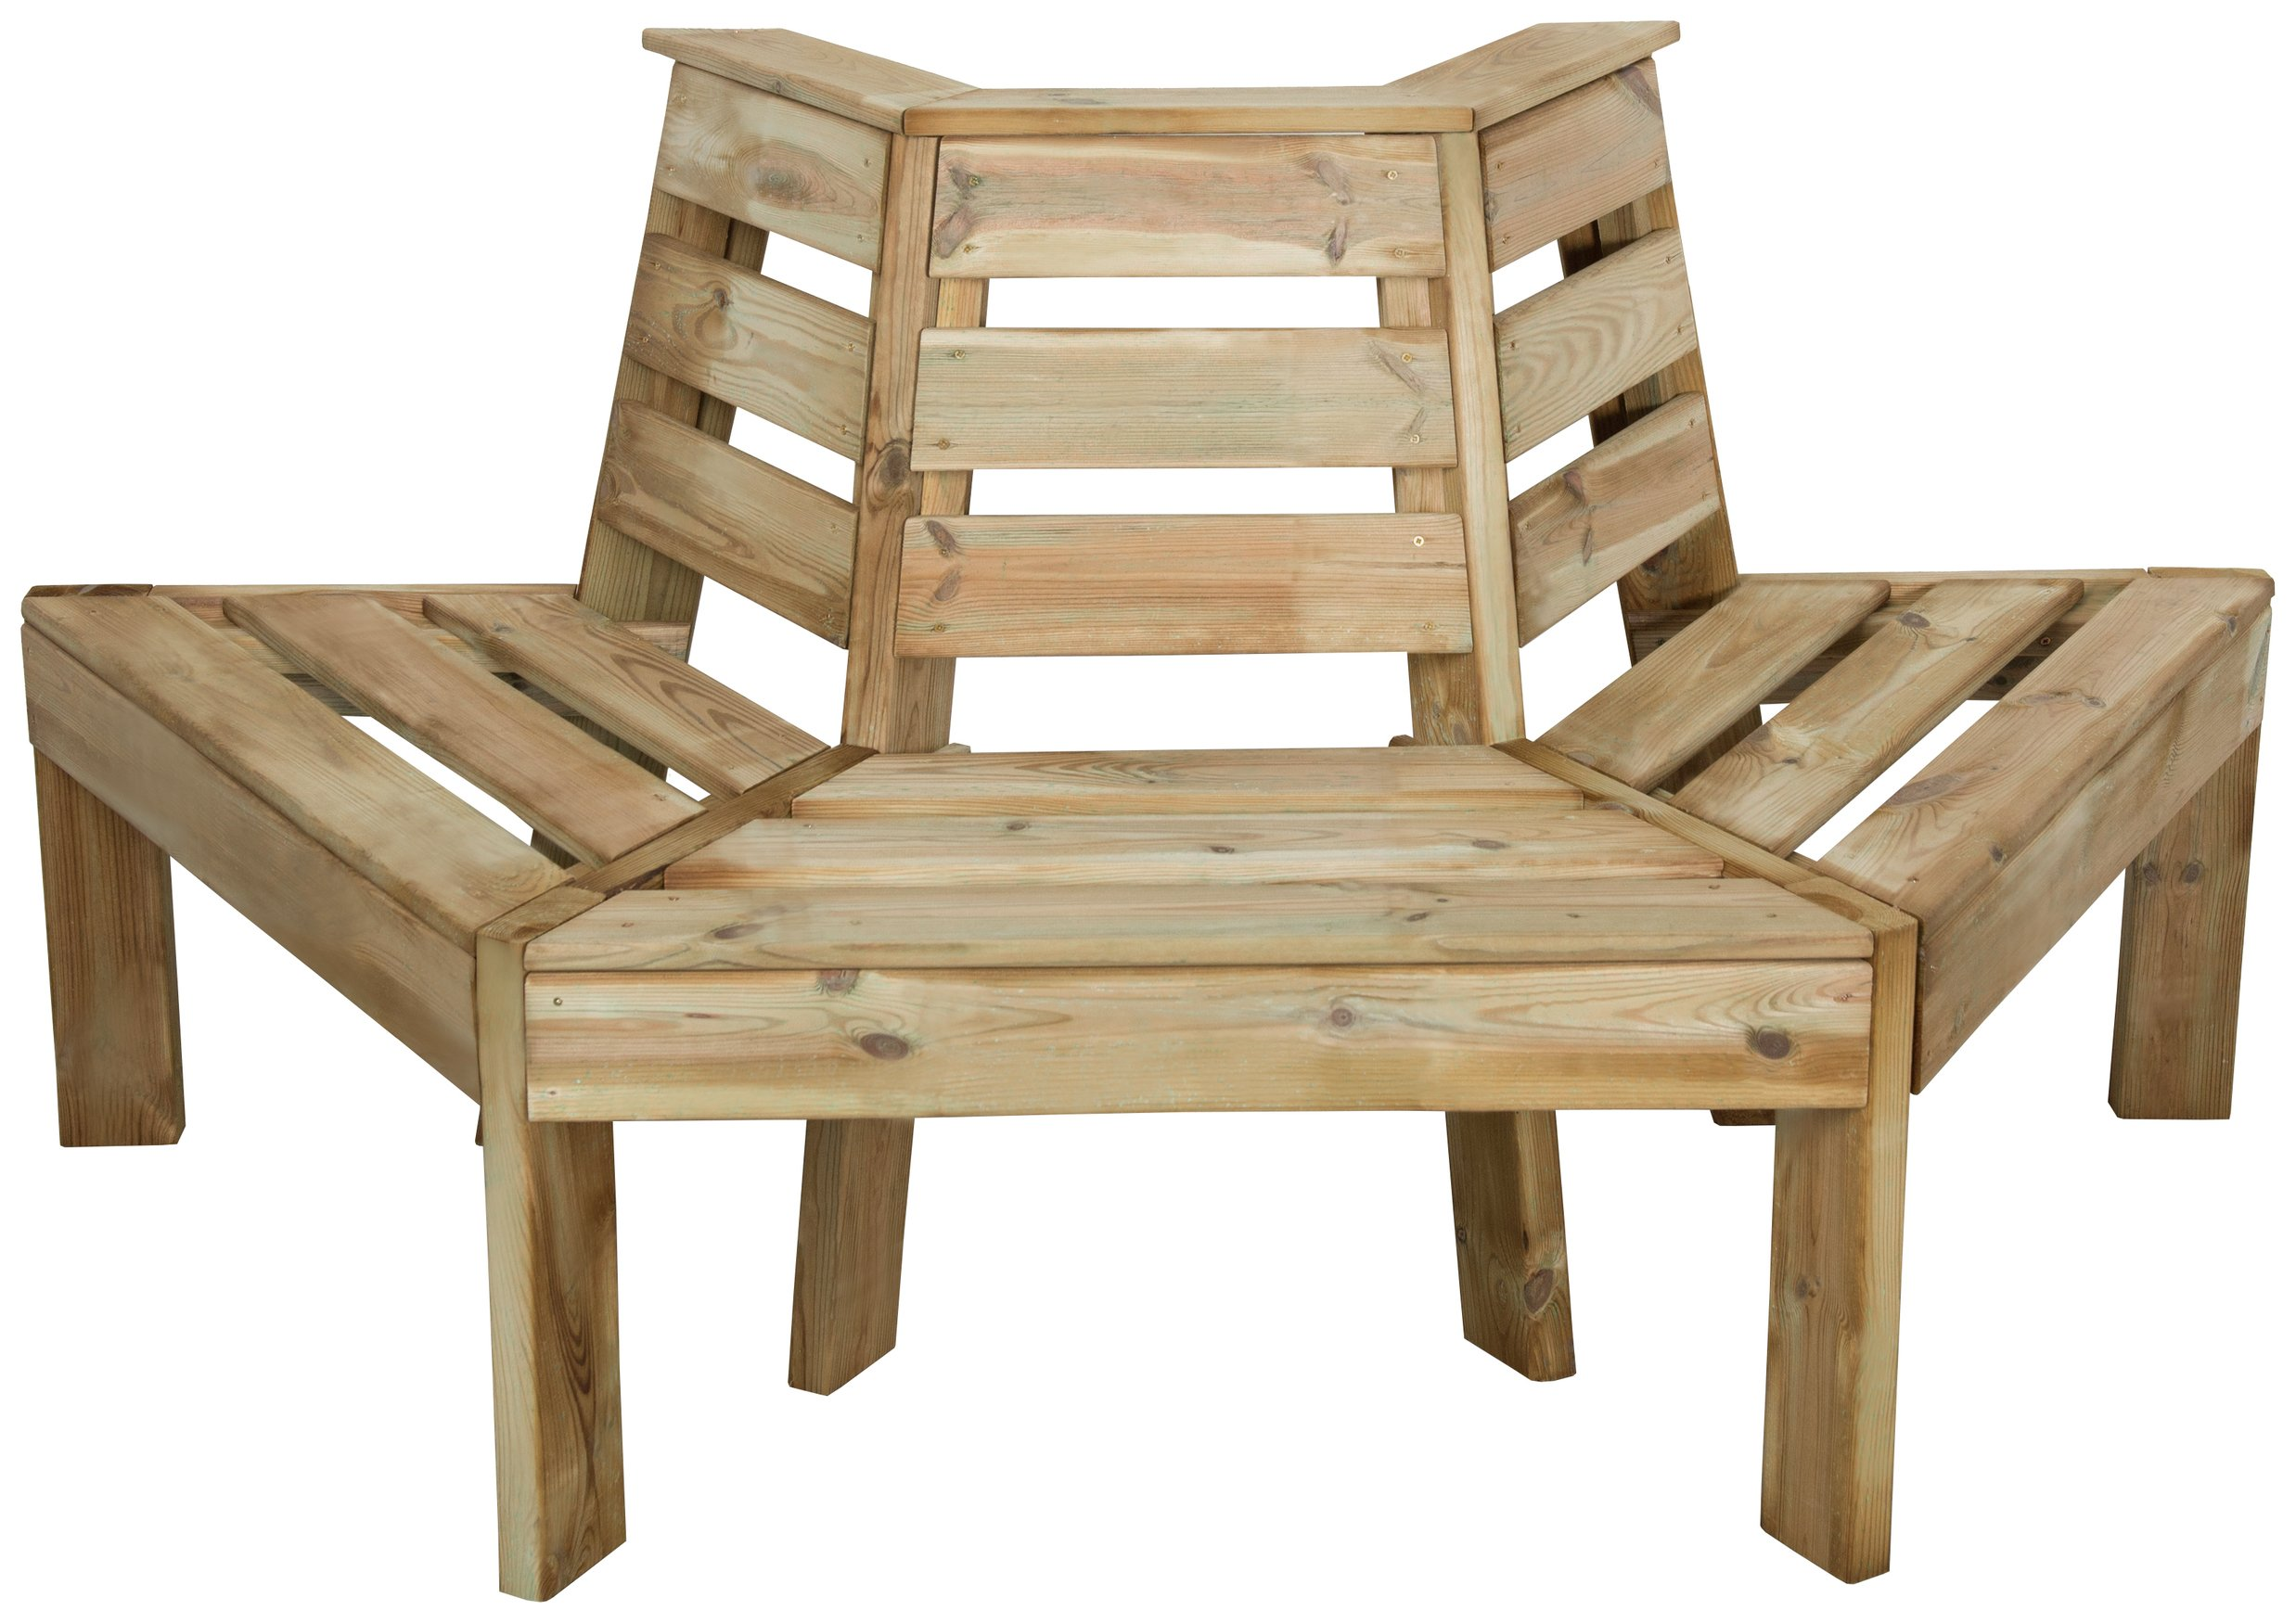 Forest Timber Tree Seat at Argos